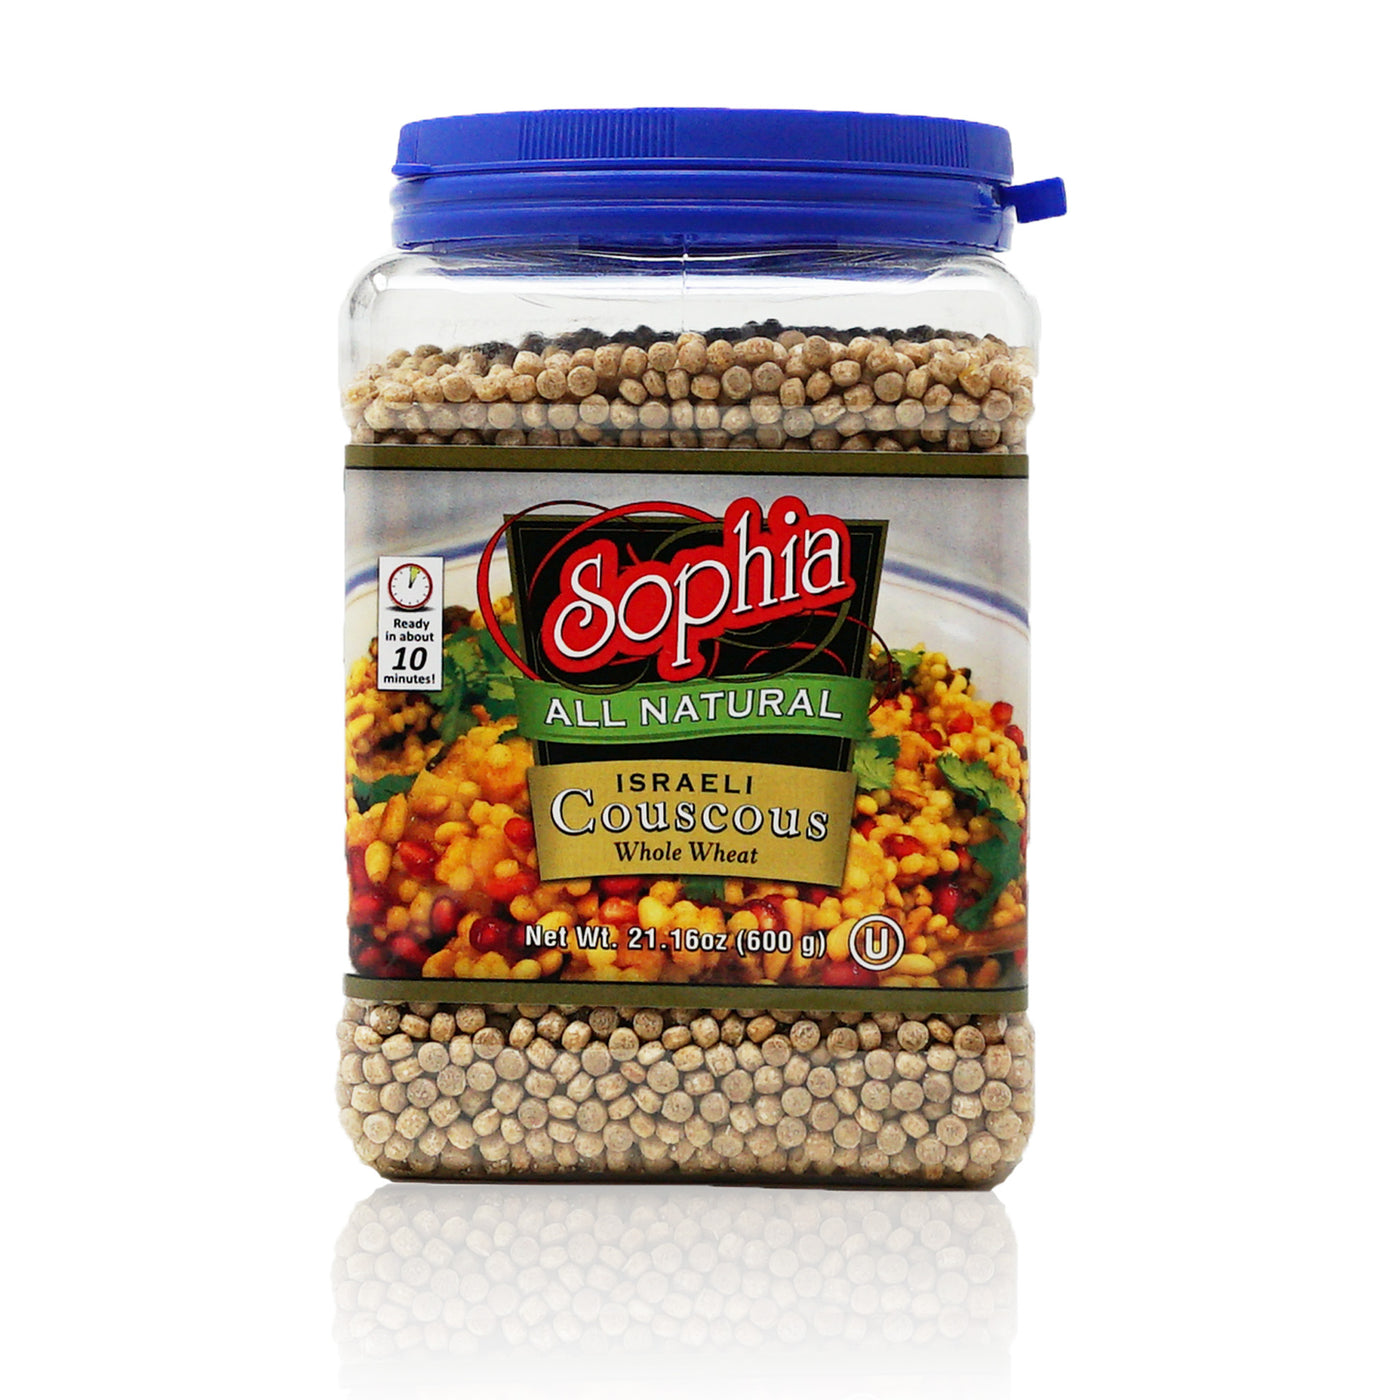 Sophia Couscous - Israeli Toasted Pearl Couscous Whole Wheat